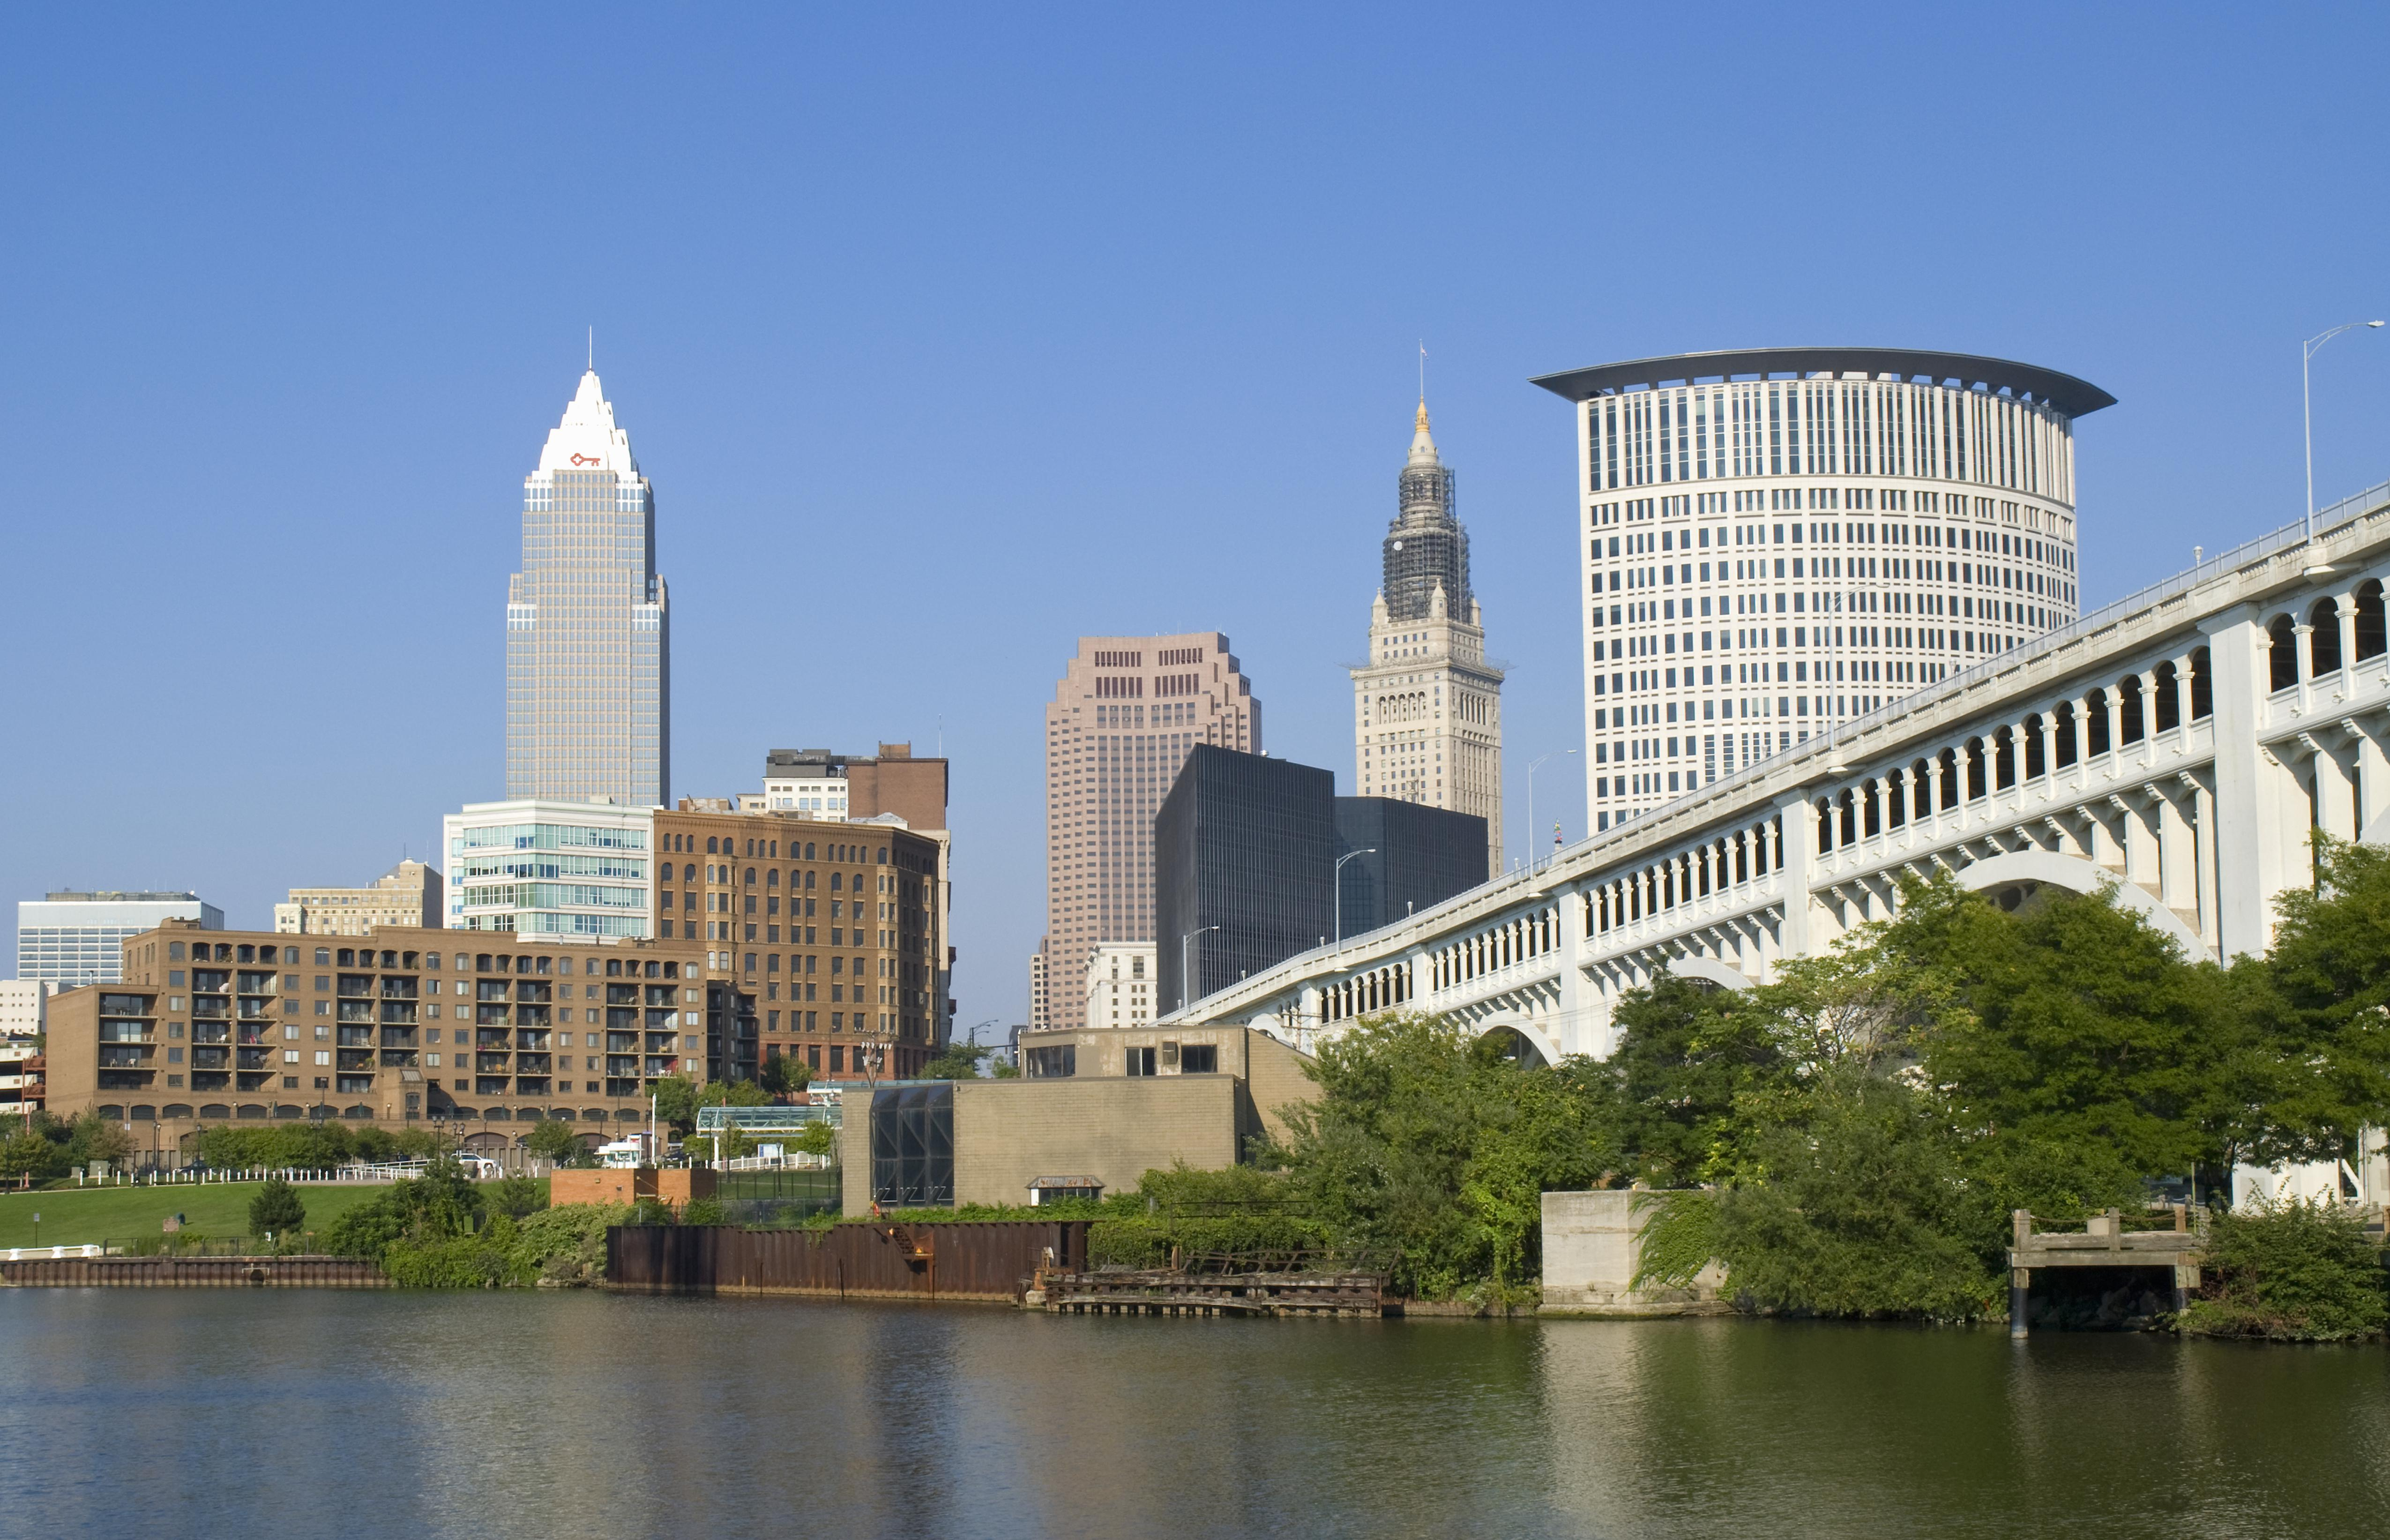 USA, Ohio, Cleveland, downtown skyline